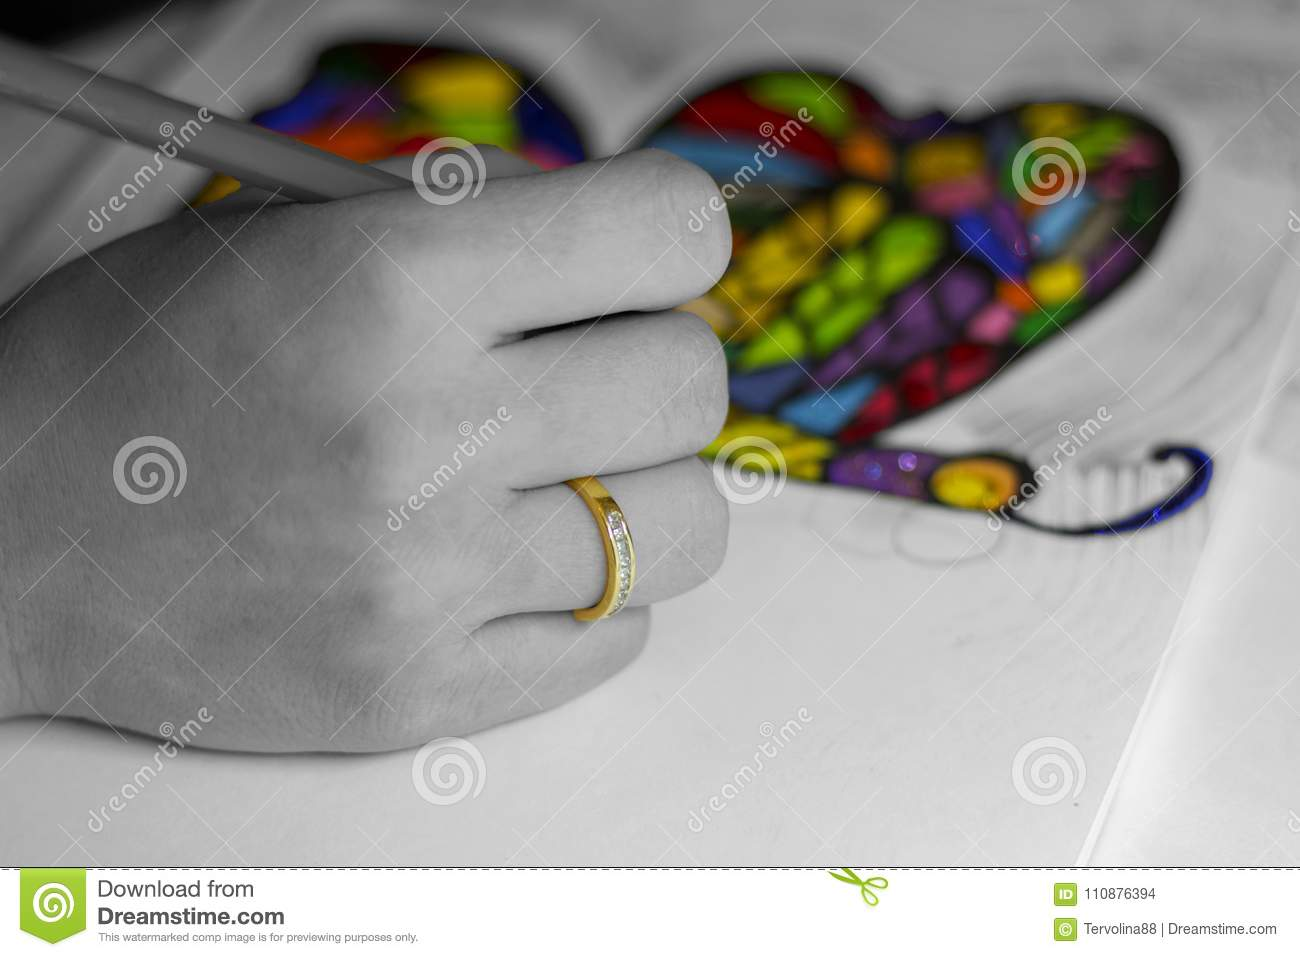 Hand drawing a colorful rainbow butterfly